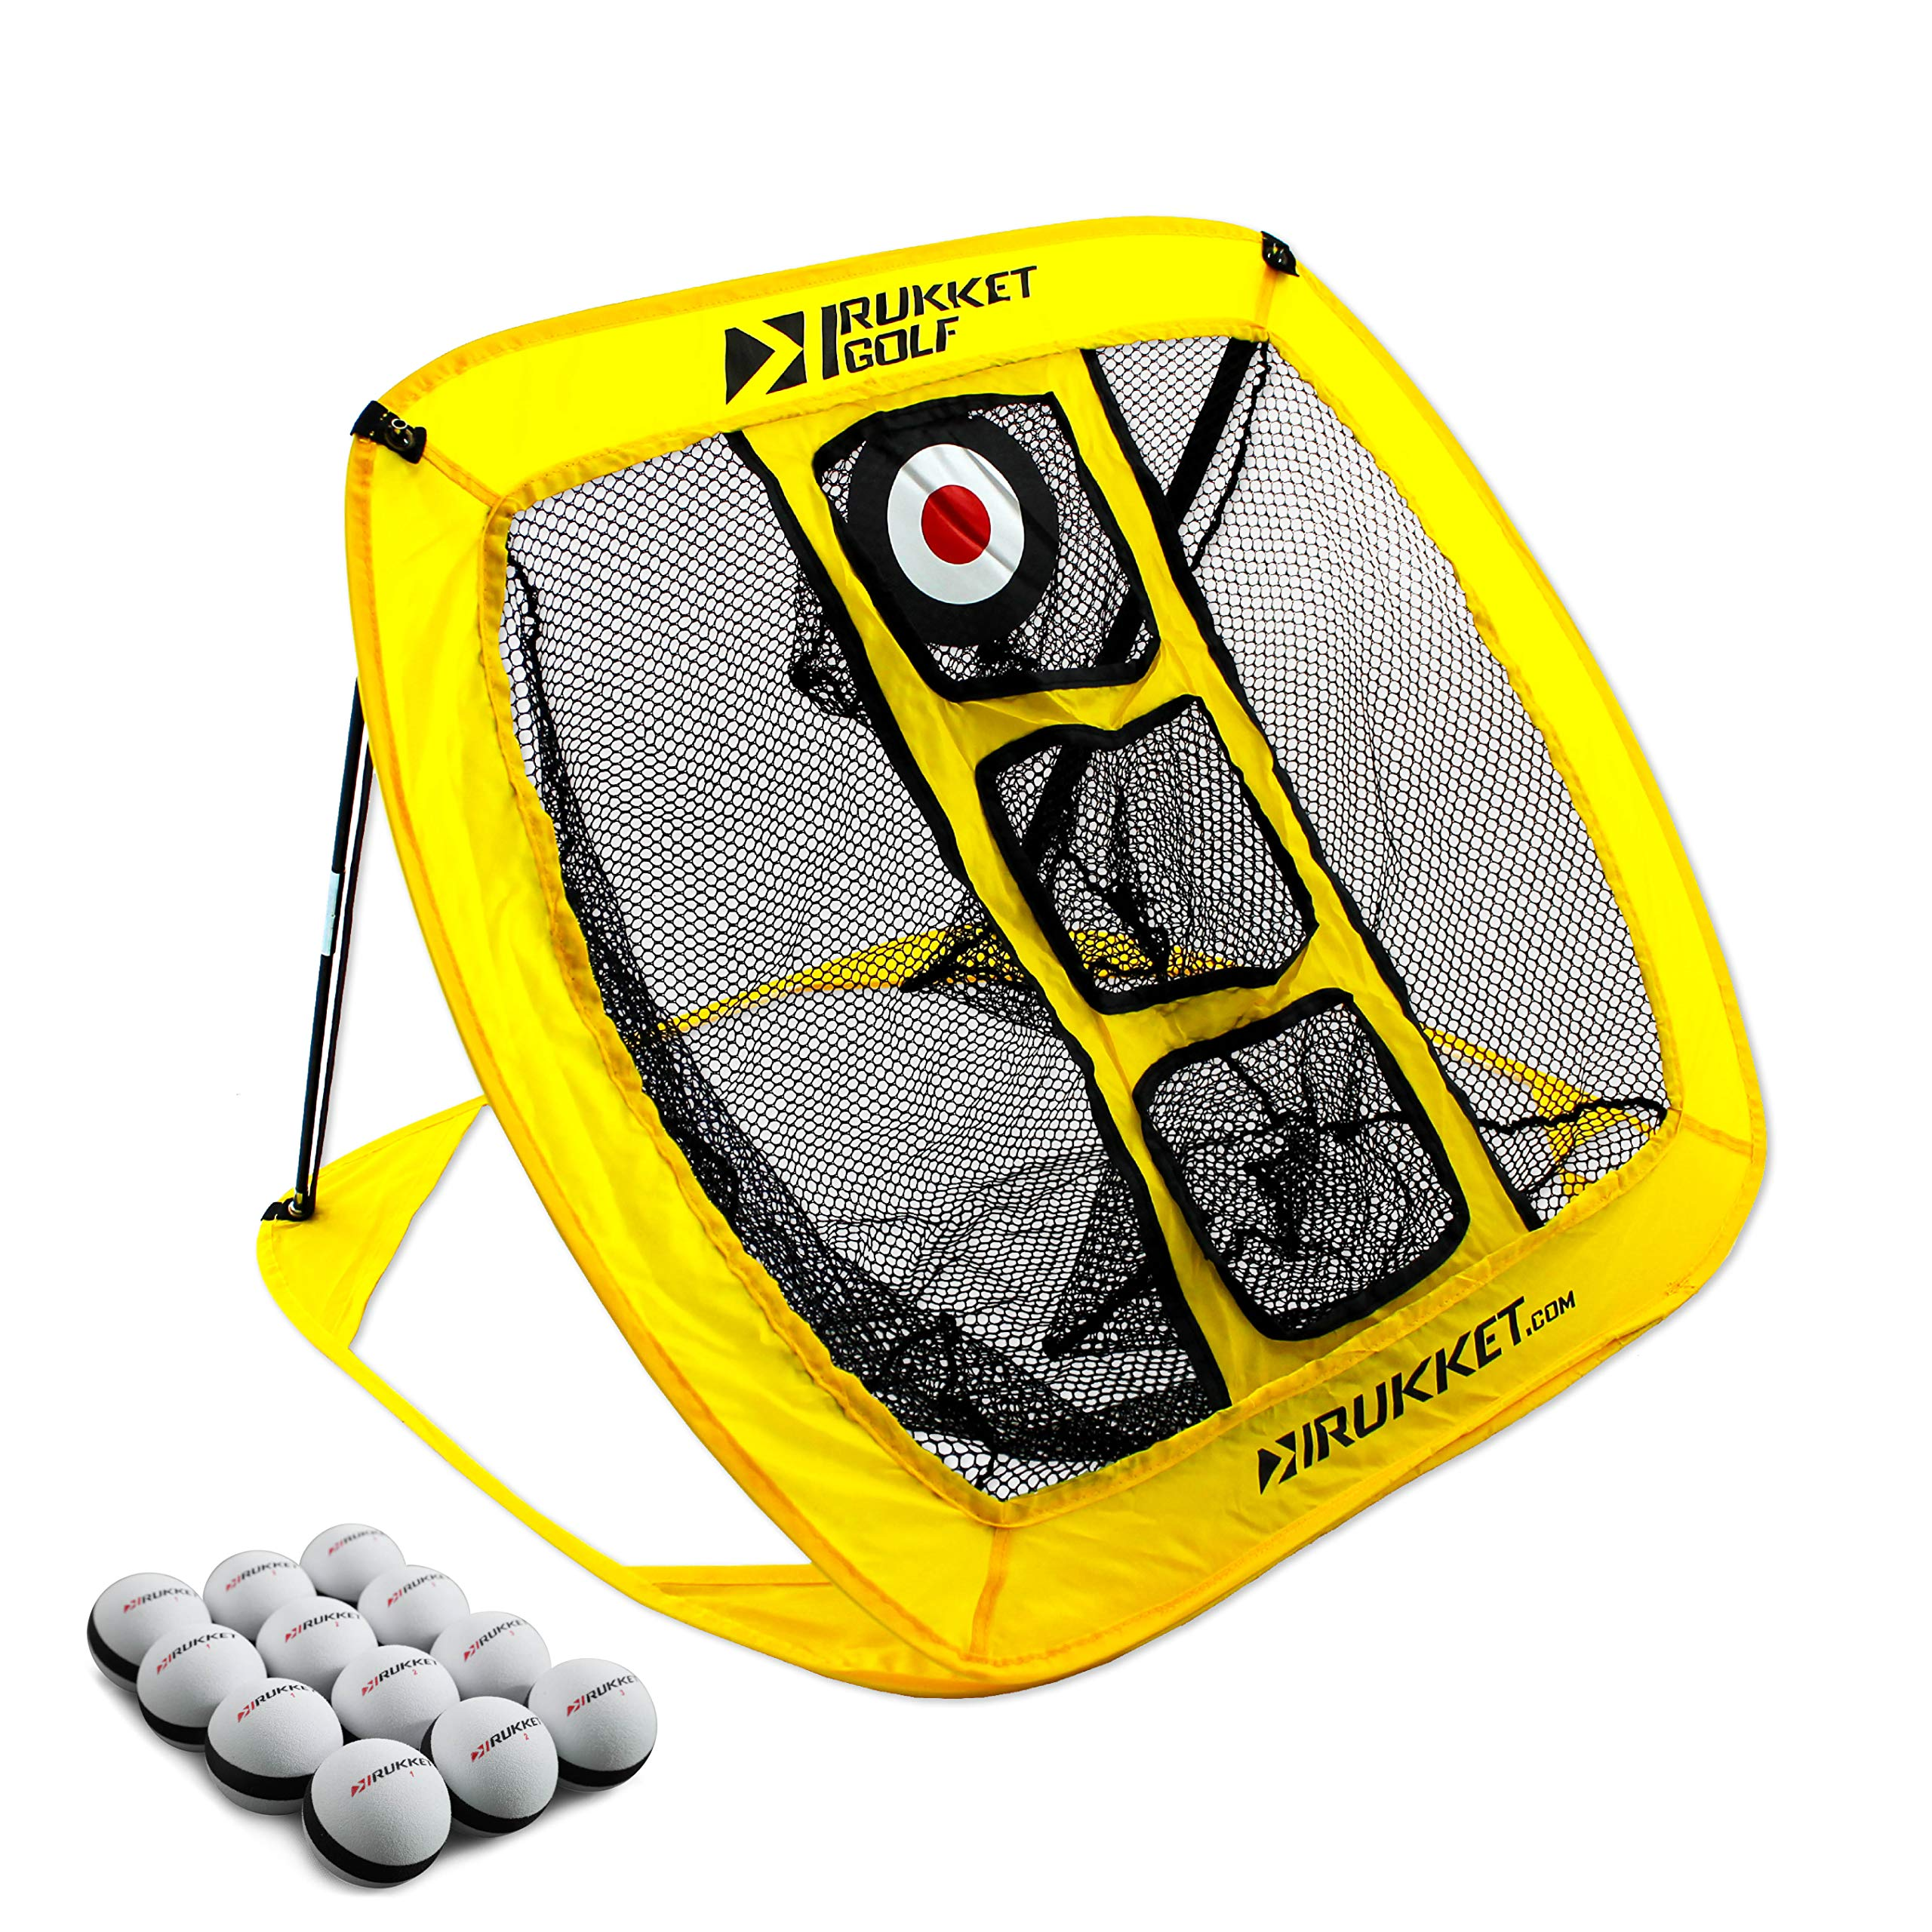 Rukket Pop Up Golf Chipping Net   Outdoor/Indoor Golfing Target Accessories and Backyard Practice Swing Game with 12 Foam Training Balls (Yellow) by Rukket Sports